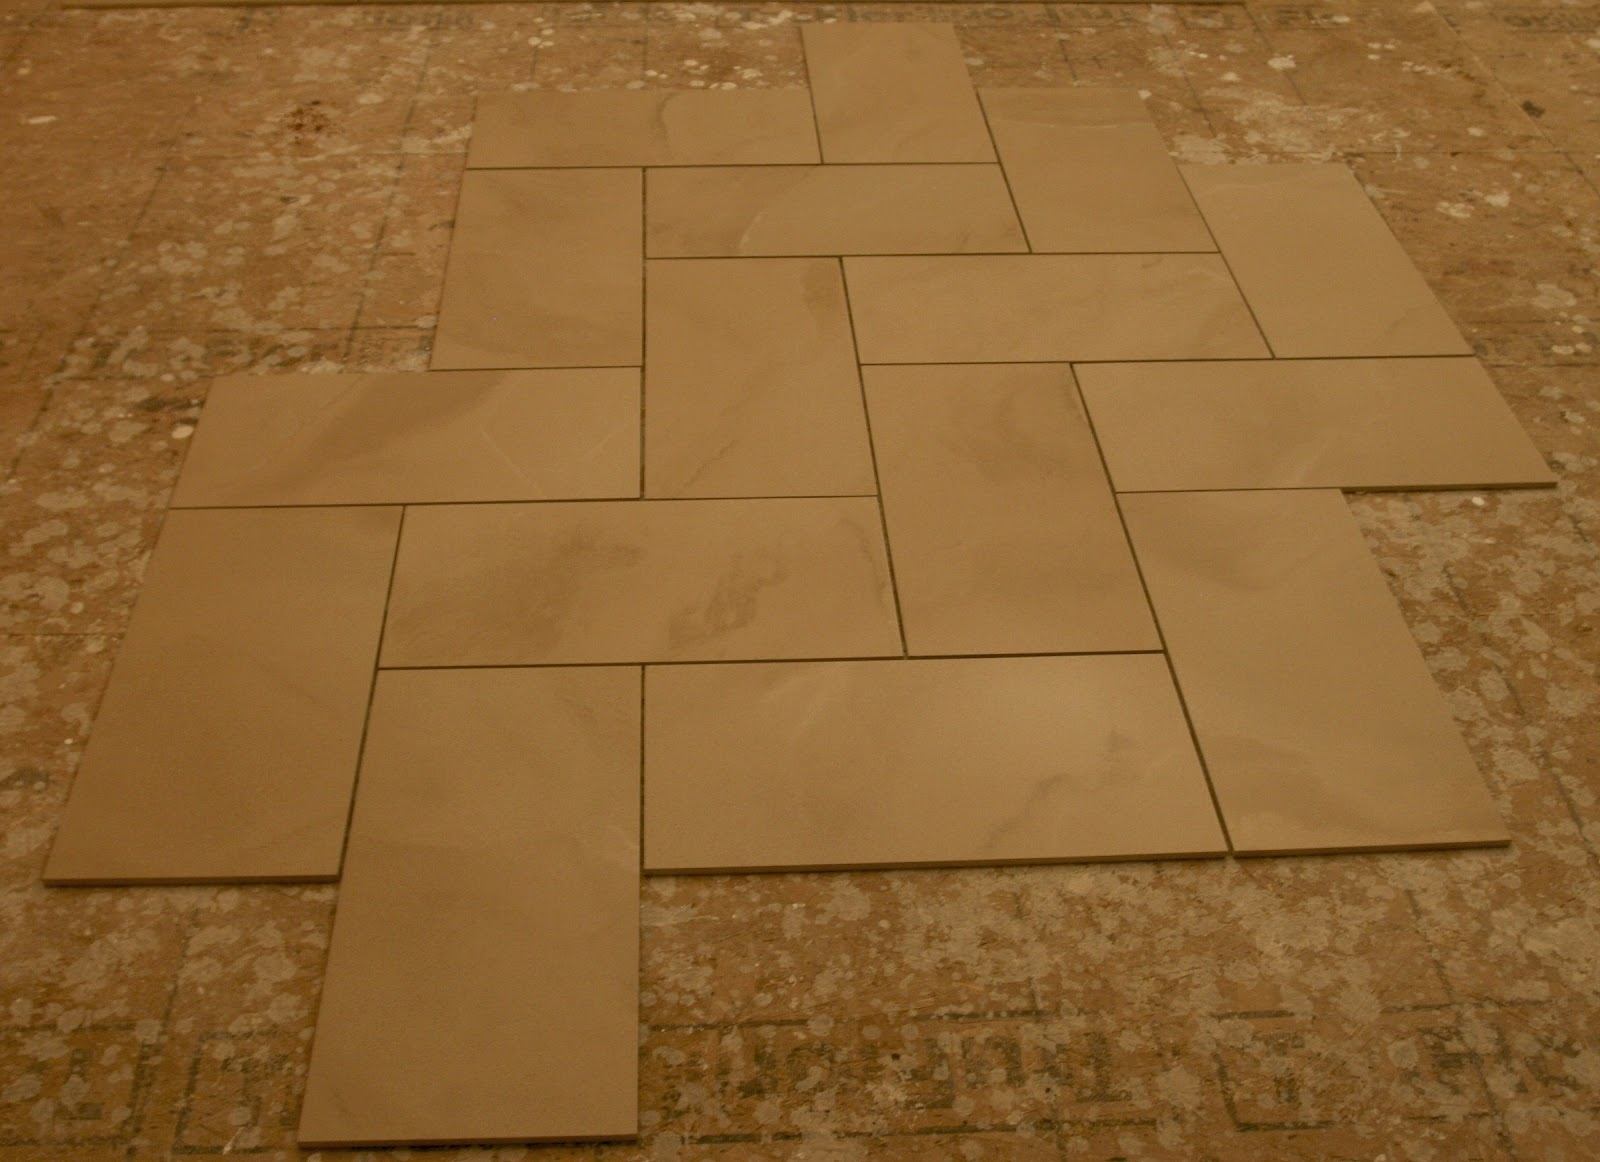 tile floor patterns our adventures in nottafarm forest floor pattern options 12x24 floor tile  patterns MASYWJZ